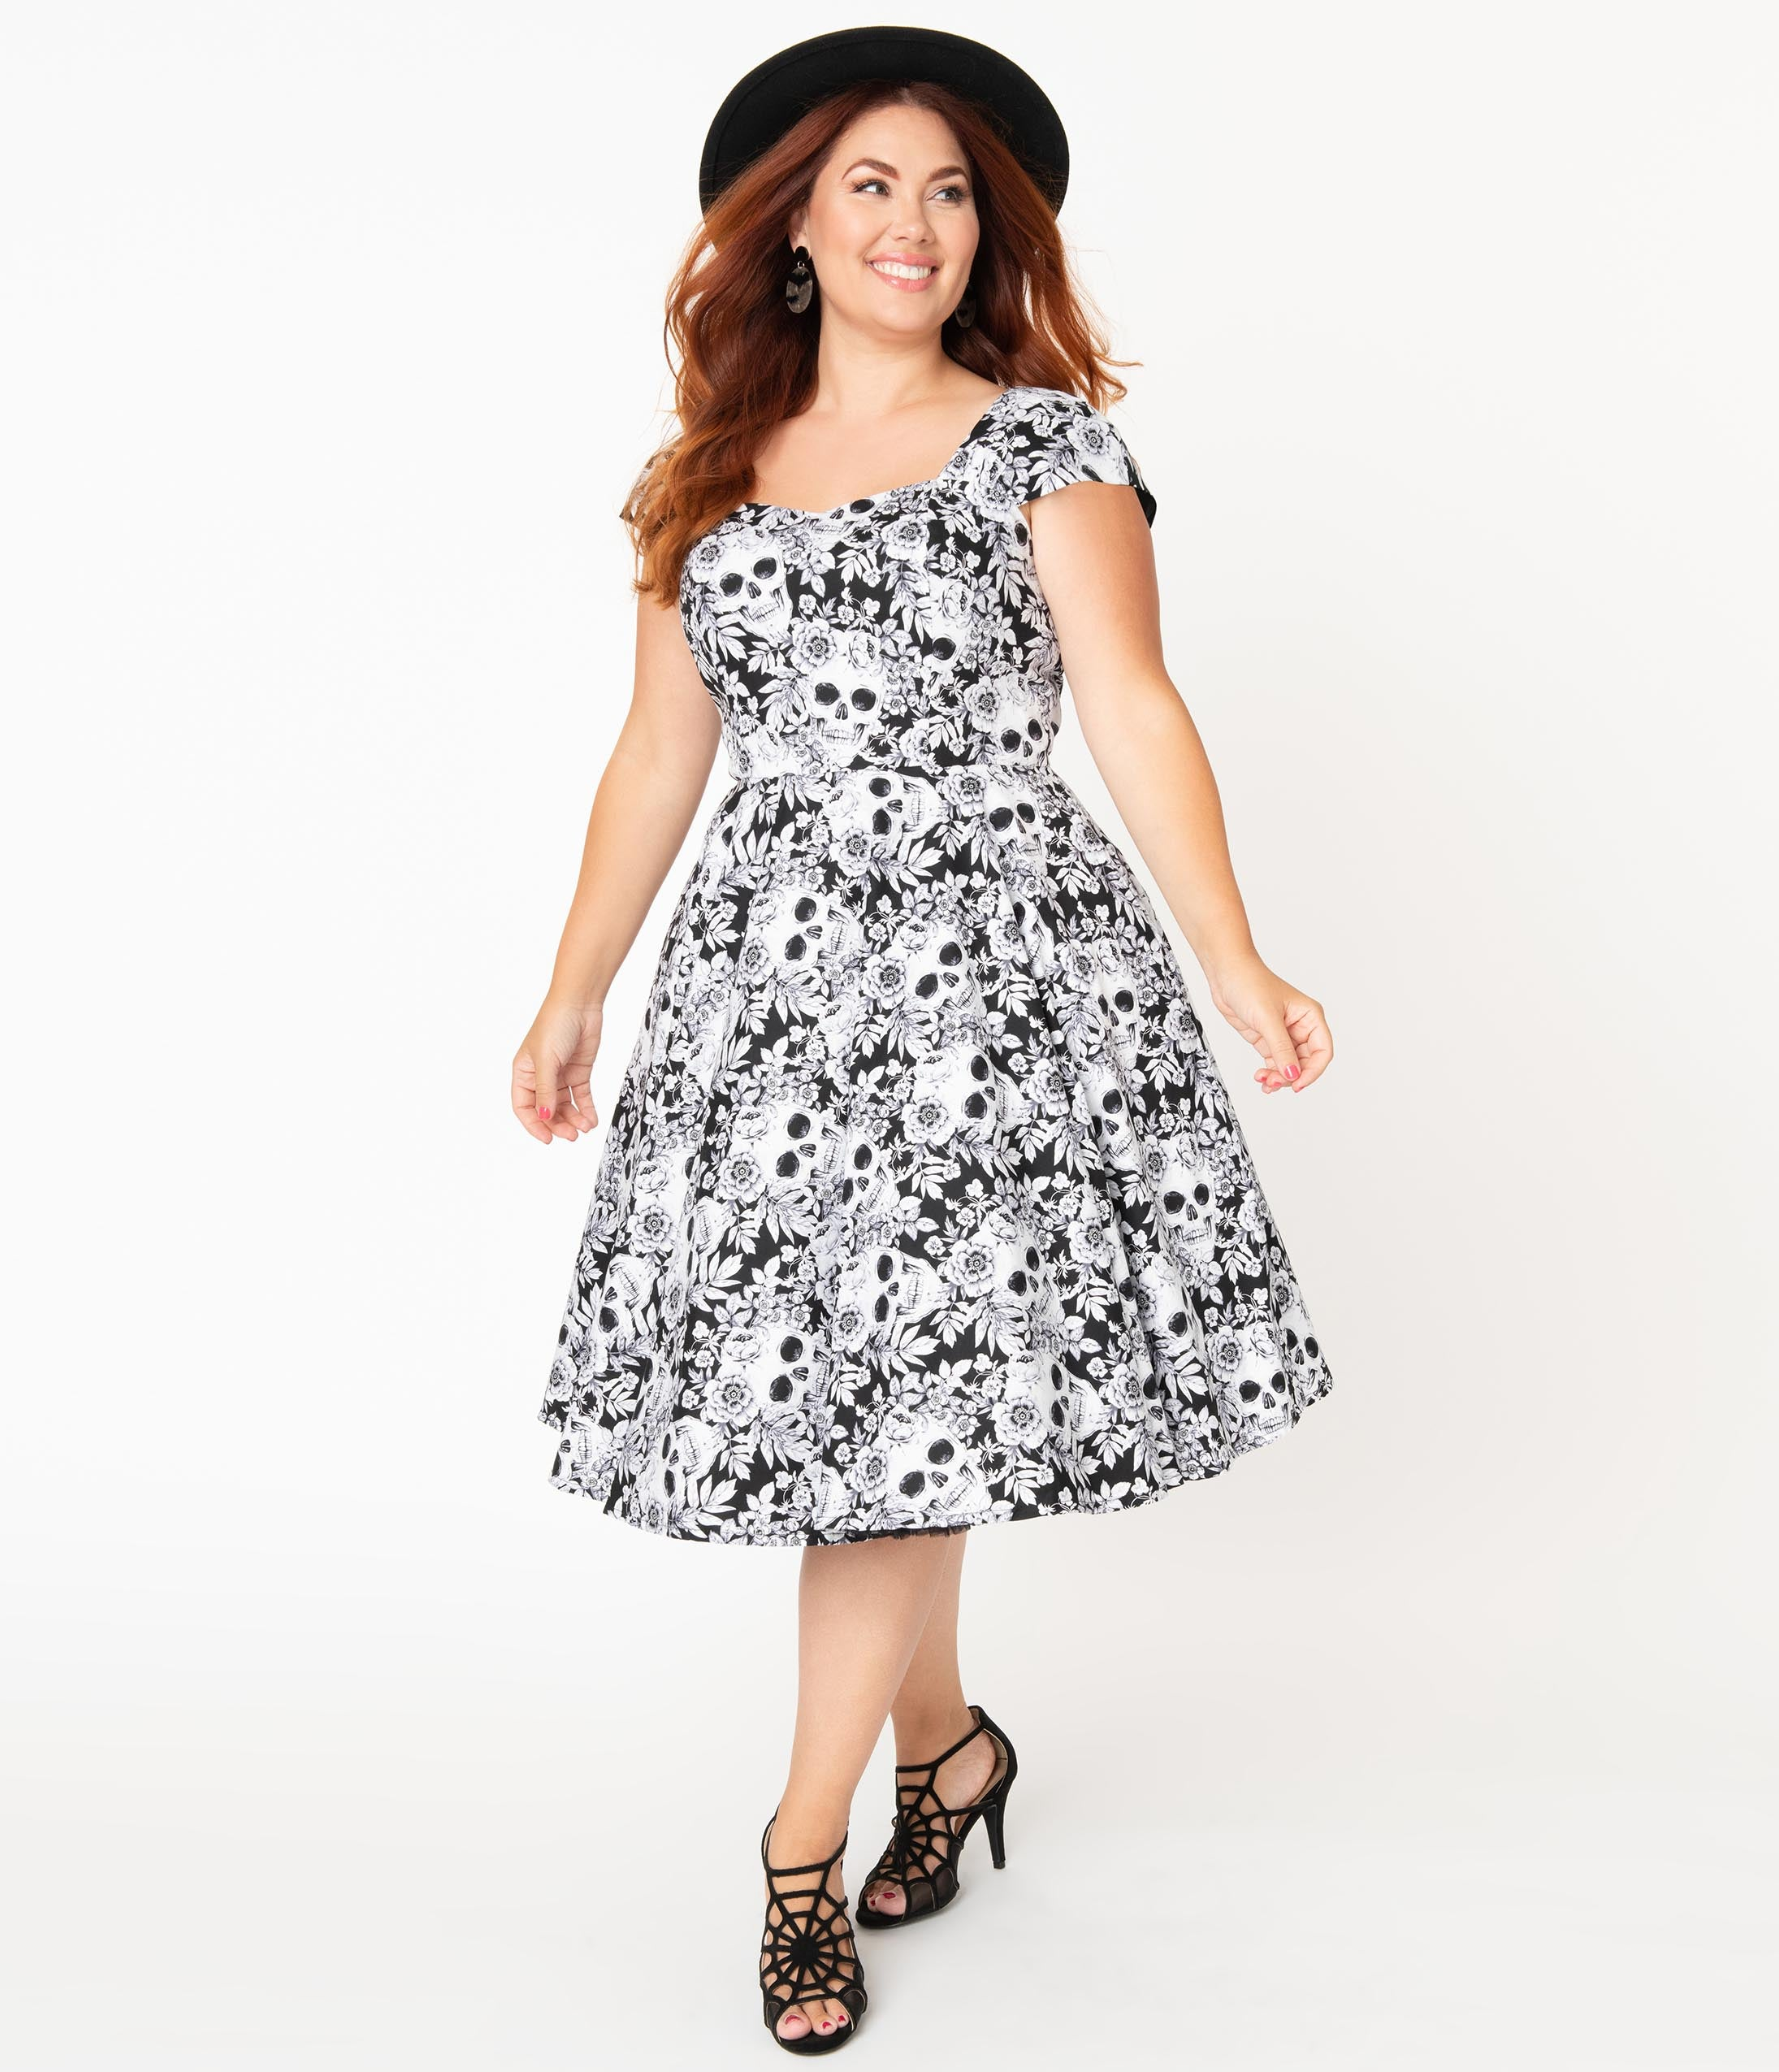 Vintage Retro Halloween Themed Clothing Plus Size Black  White Skulls  Roses Print Aida Swing Dress $88.00 AT vintagedancer.com